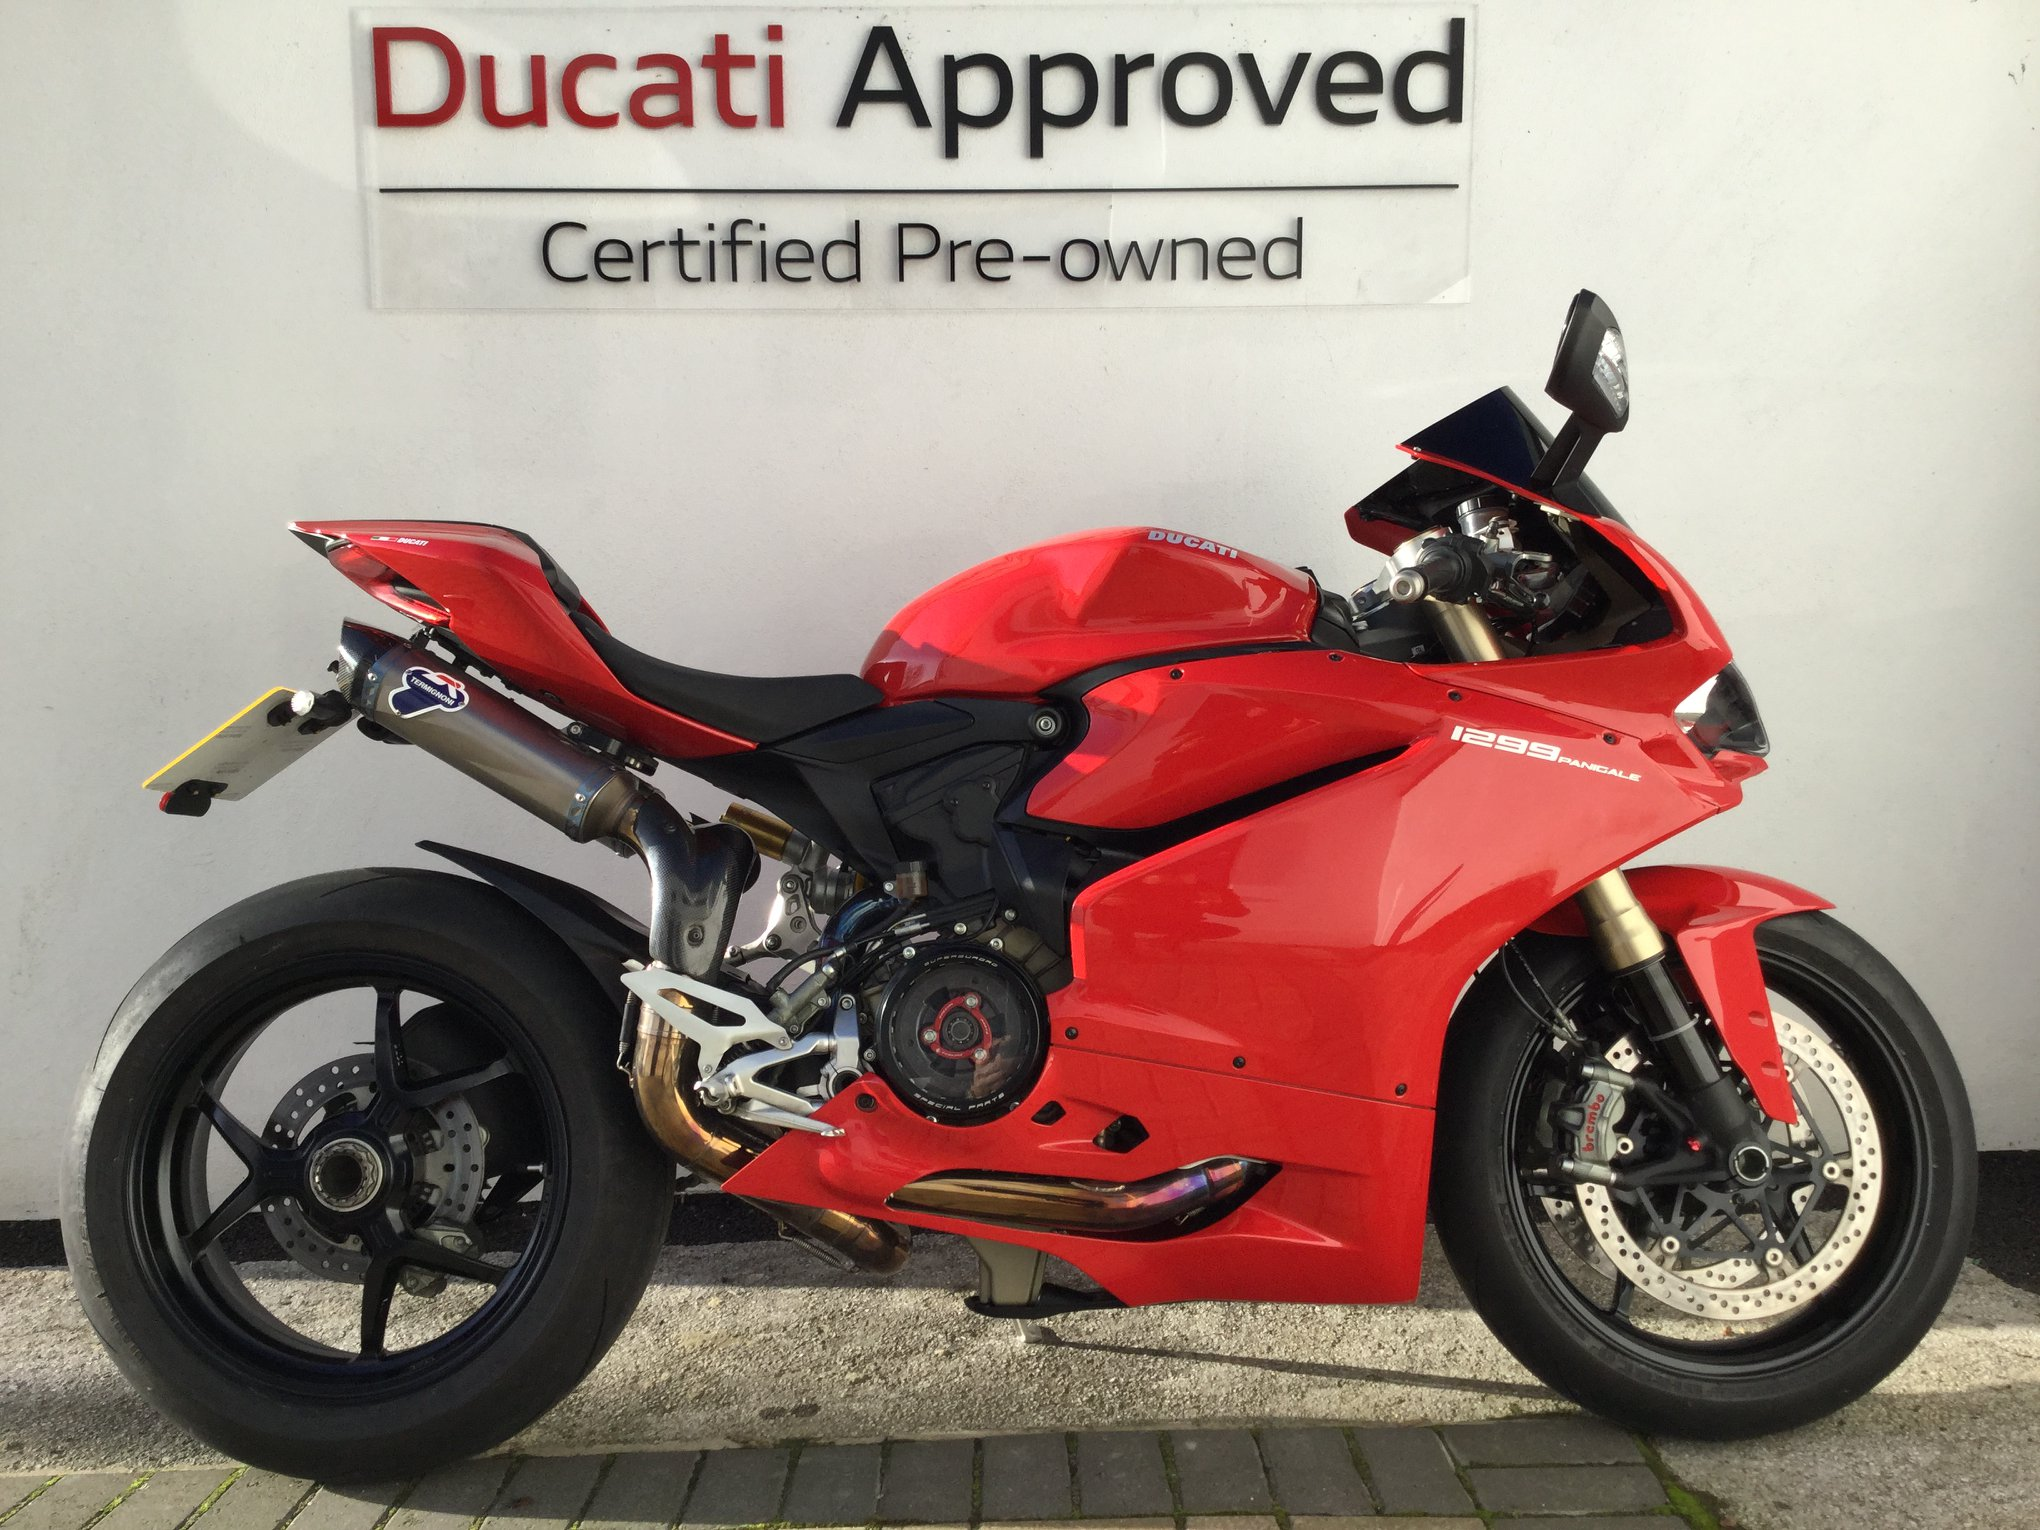 Here's a stunning 1299 Panigale we currently have in stock at our Peterborough store, Don't think we'll ever get bored of hearing this! Please call our Peterborough or Cambridge site for more information.